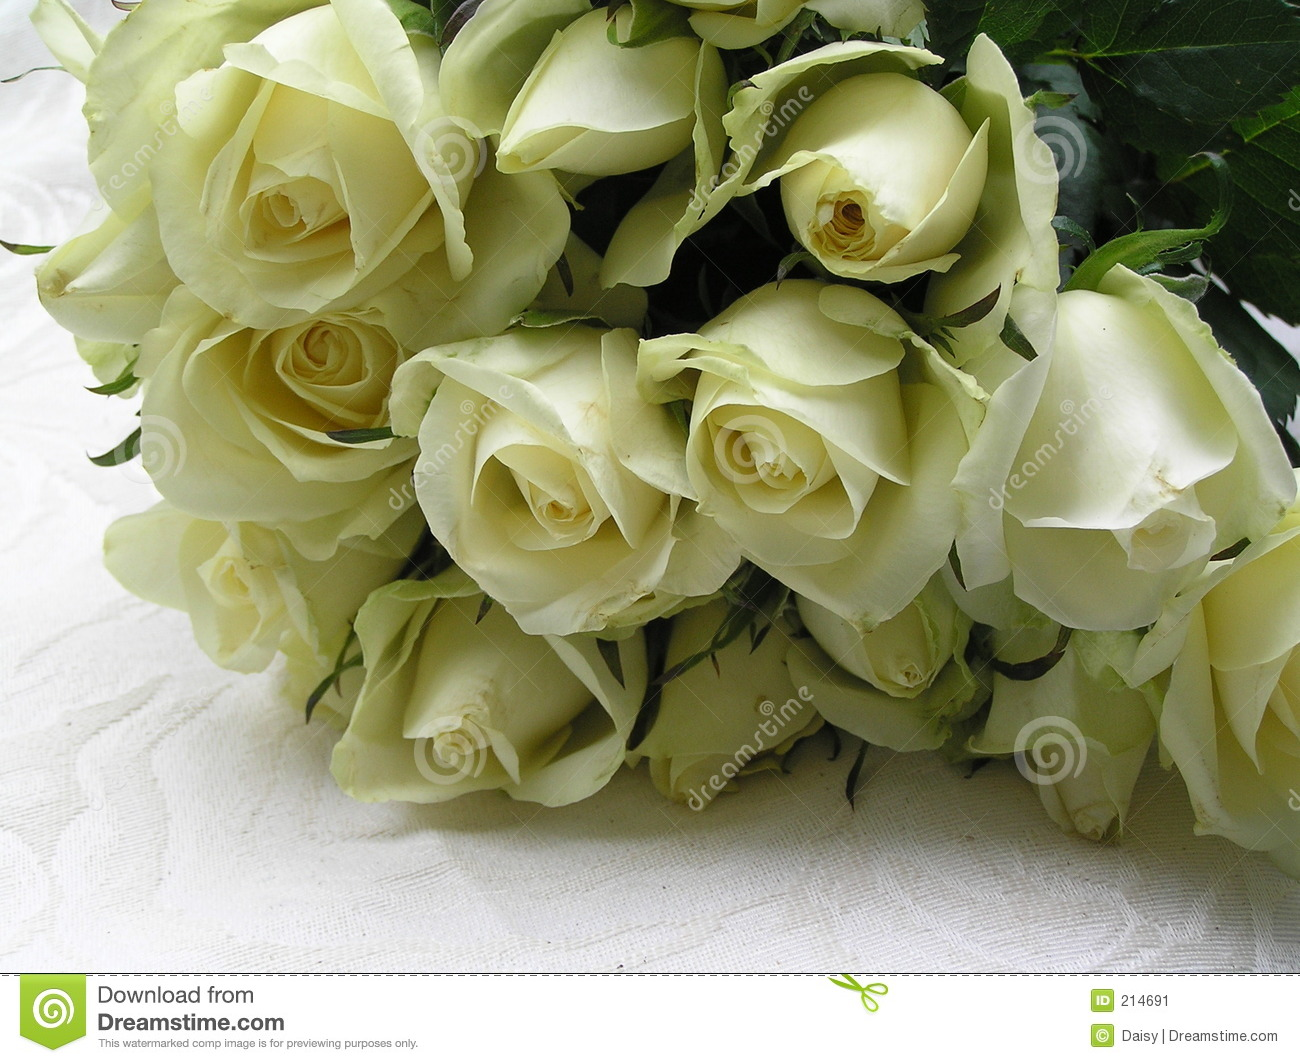 Roses for the bride